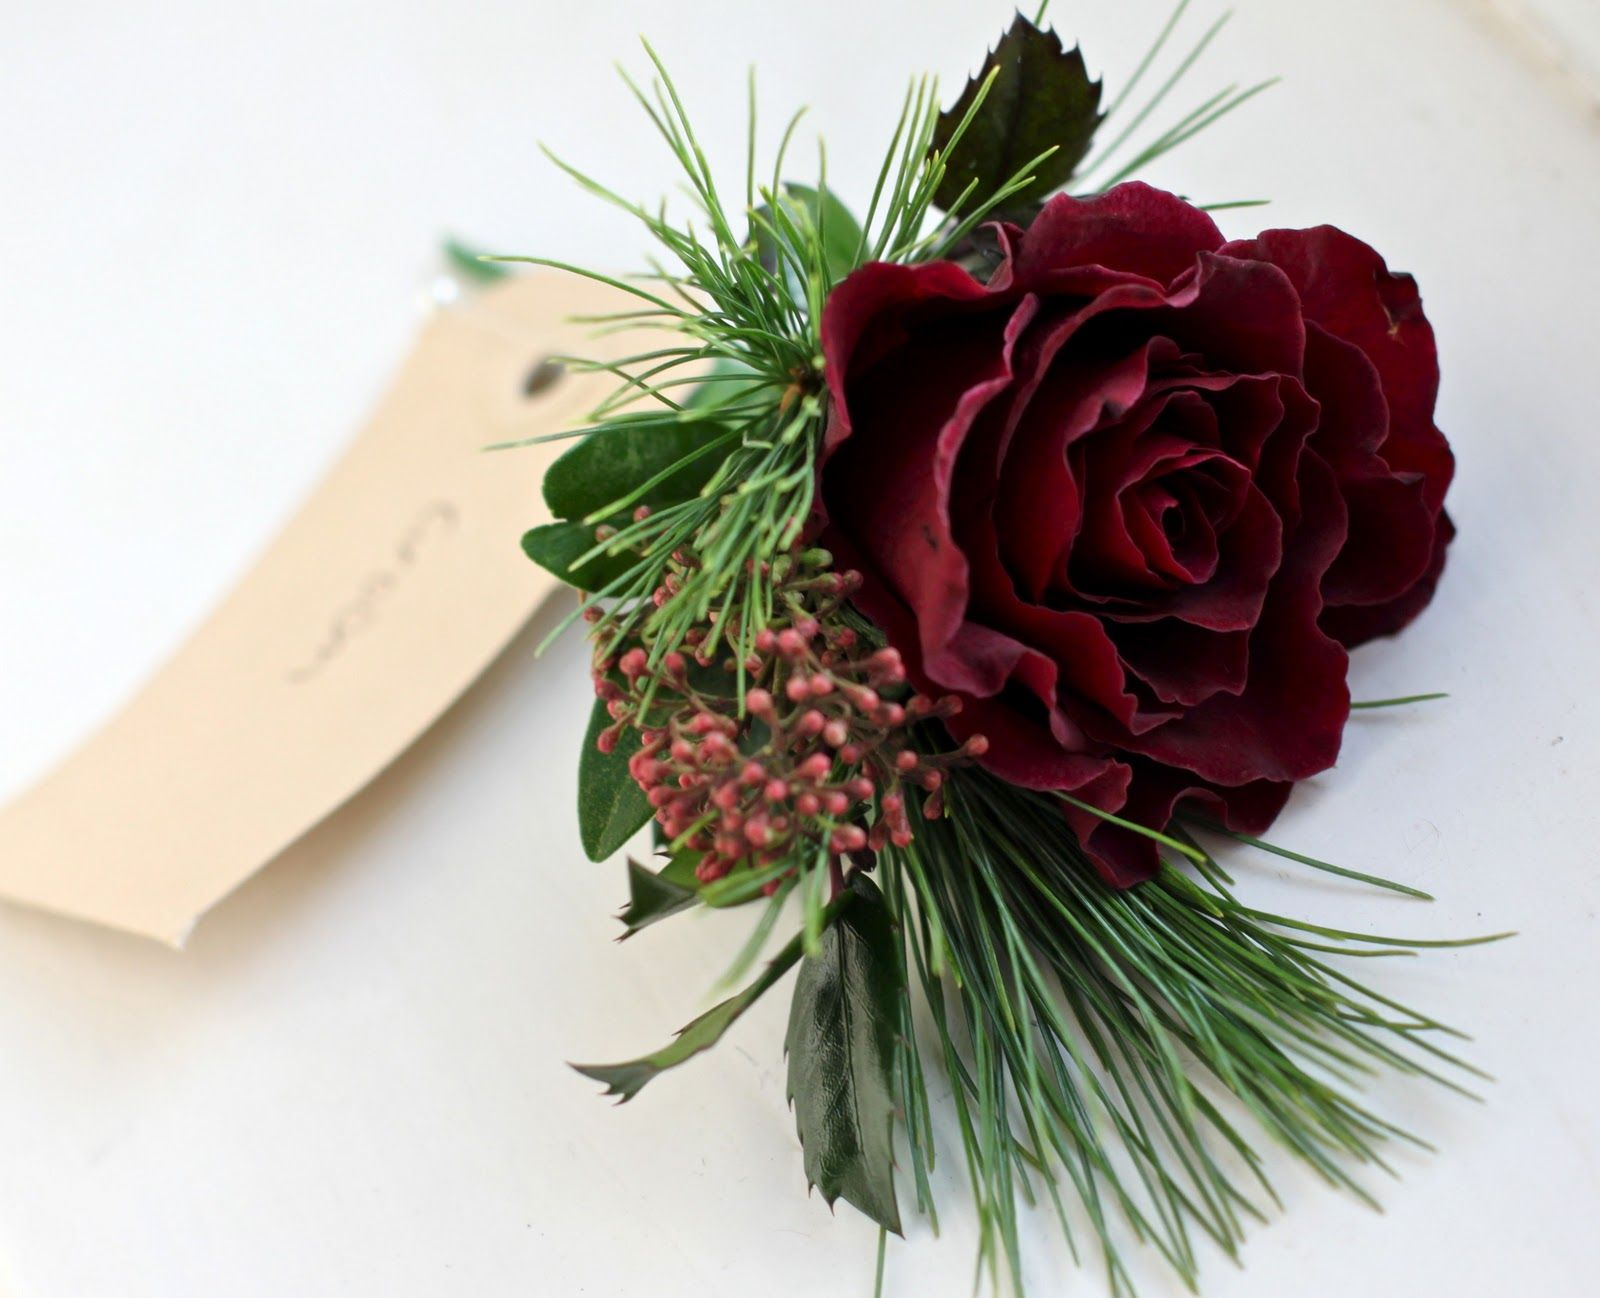 winter wedding flowers flowers for weddings burgandy wedding snowflake theme Winter buttonhole of burgundy rose pine holly and skimmia for the